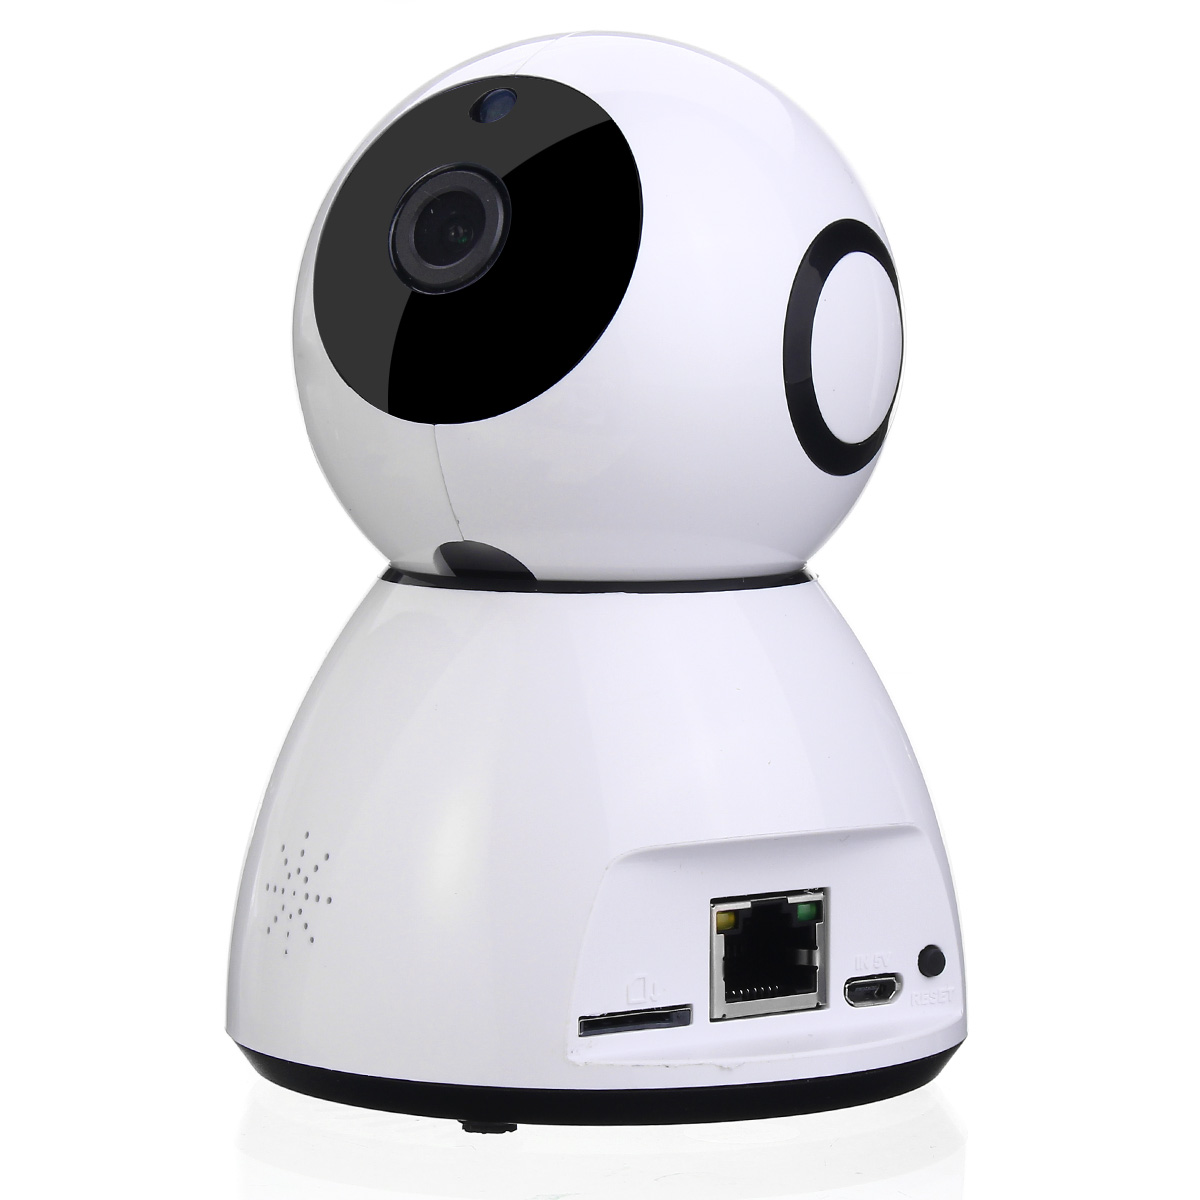 Safurance WiFi Intelligent IP Camera Rotation 1080P Wireless Night Vision HD Network Baby Monitor Home Security<br>